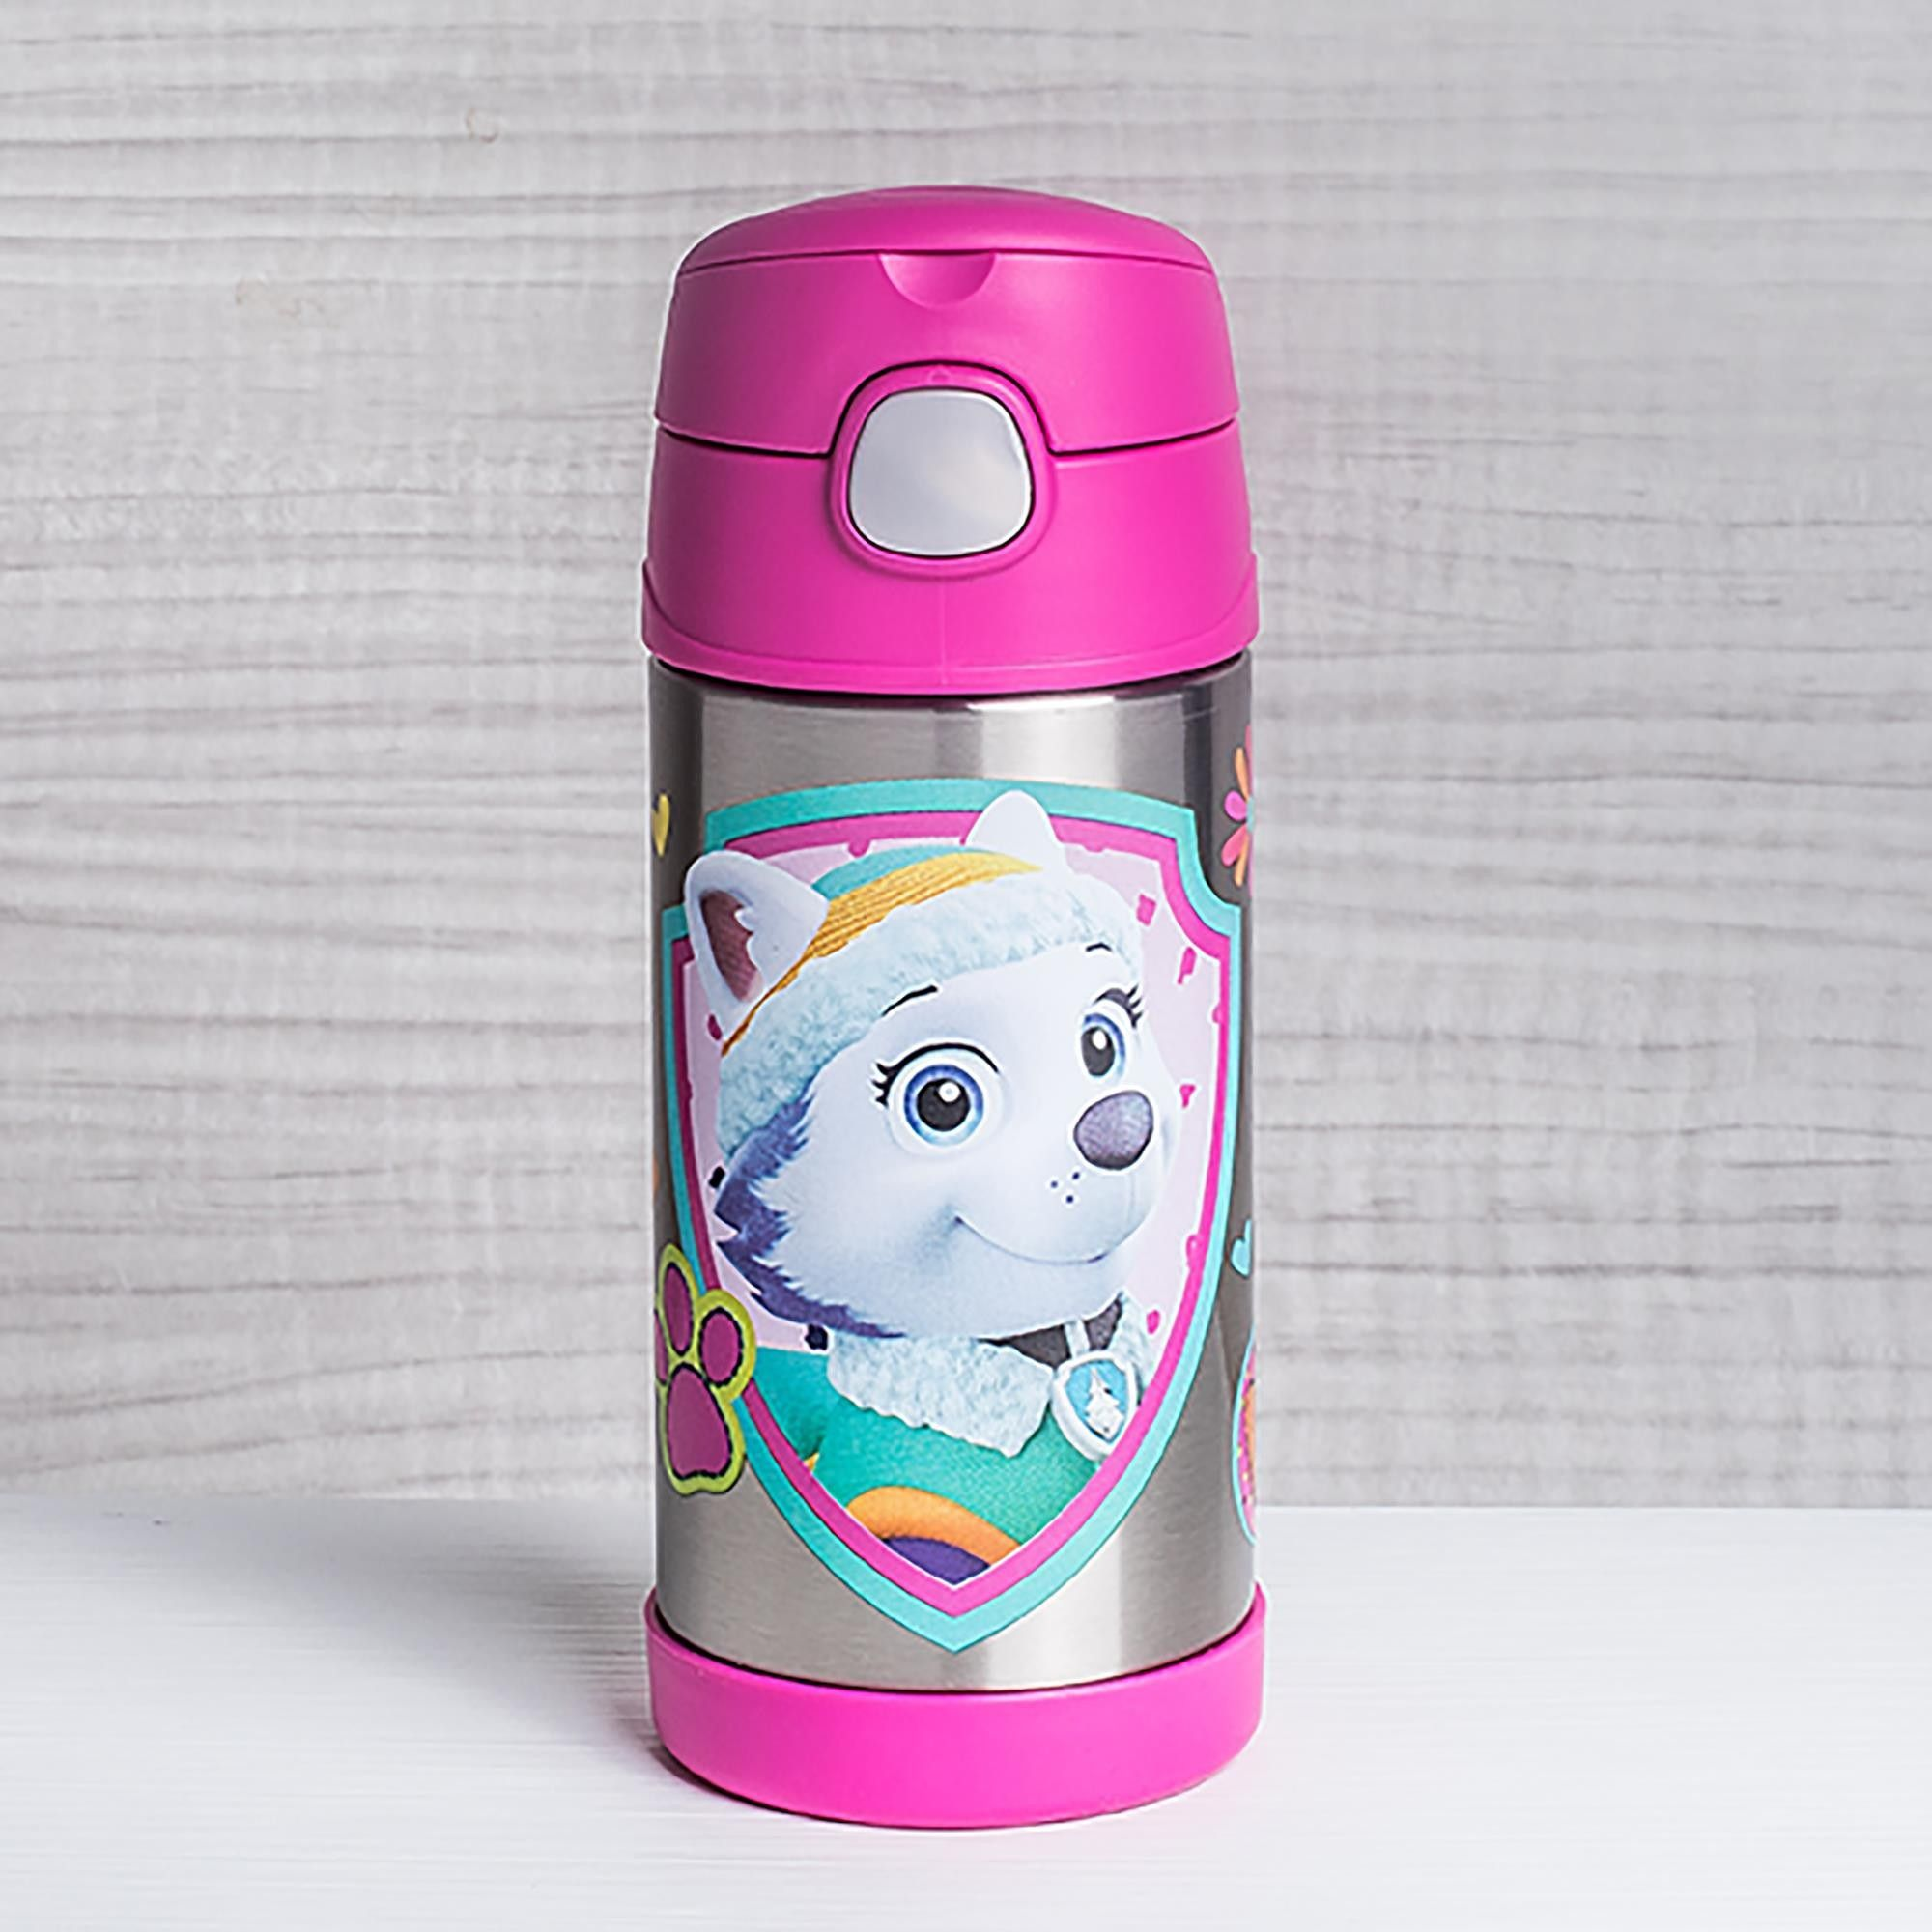 NEW THERMOS HANNAH MONTANA FUNTAINER STAINLESS STEEL BOTTLE KEEPS COLD 12 HOURS